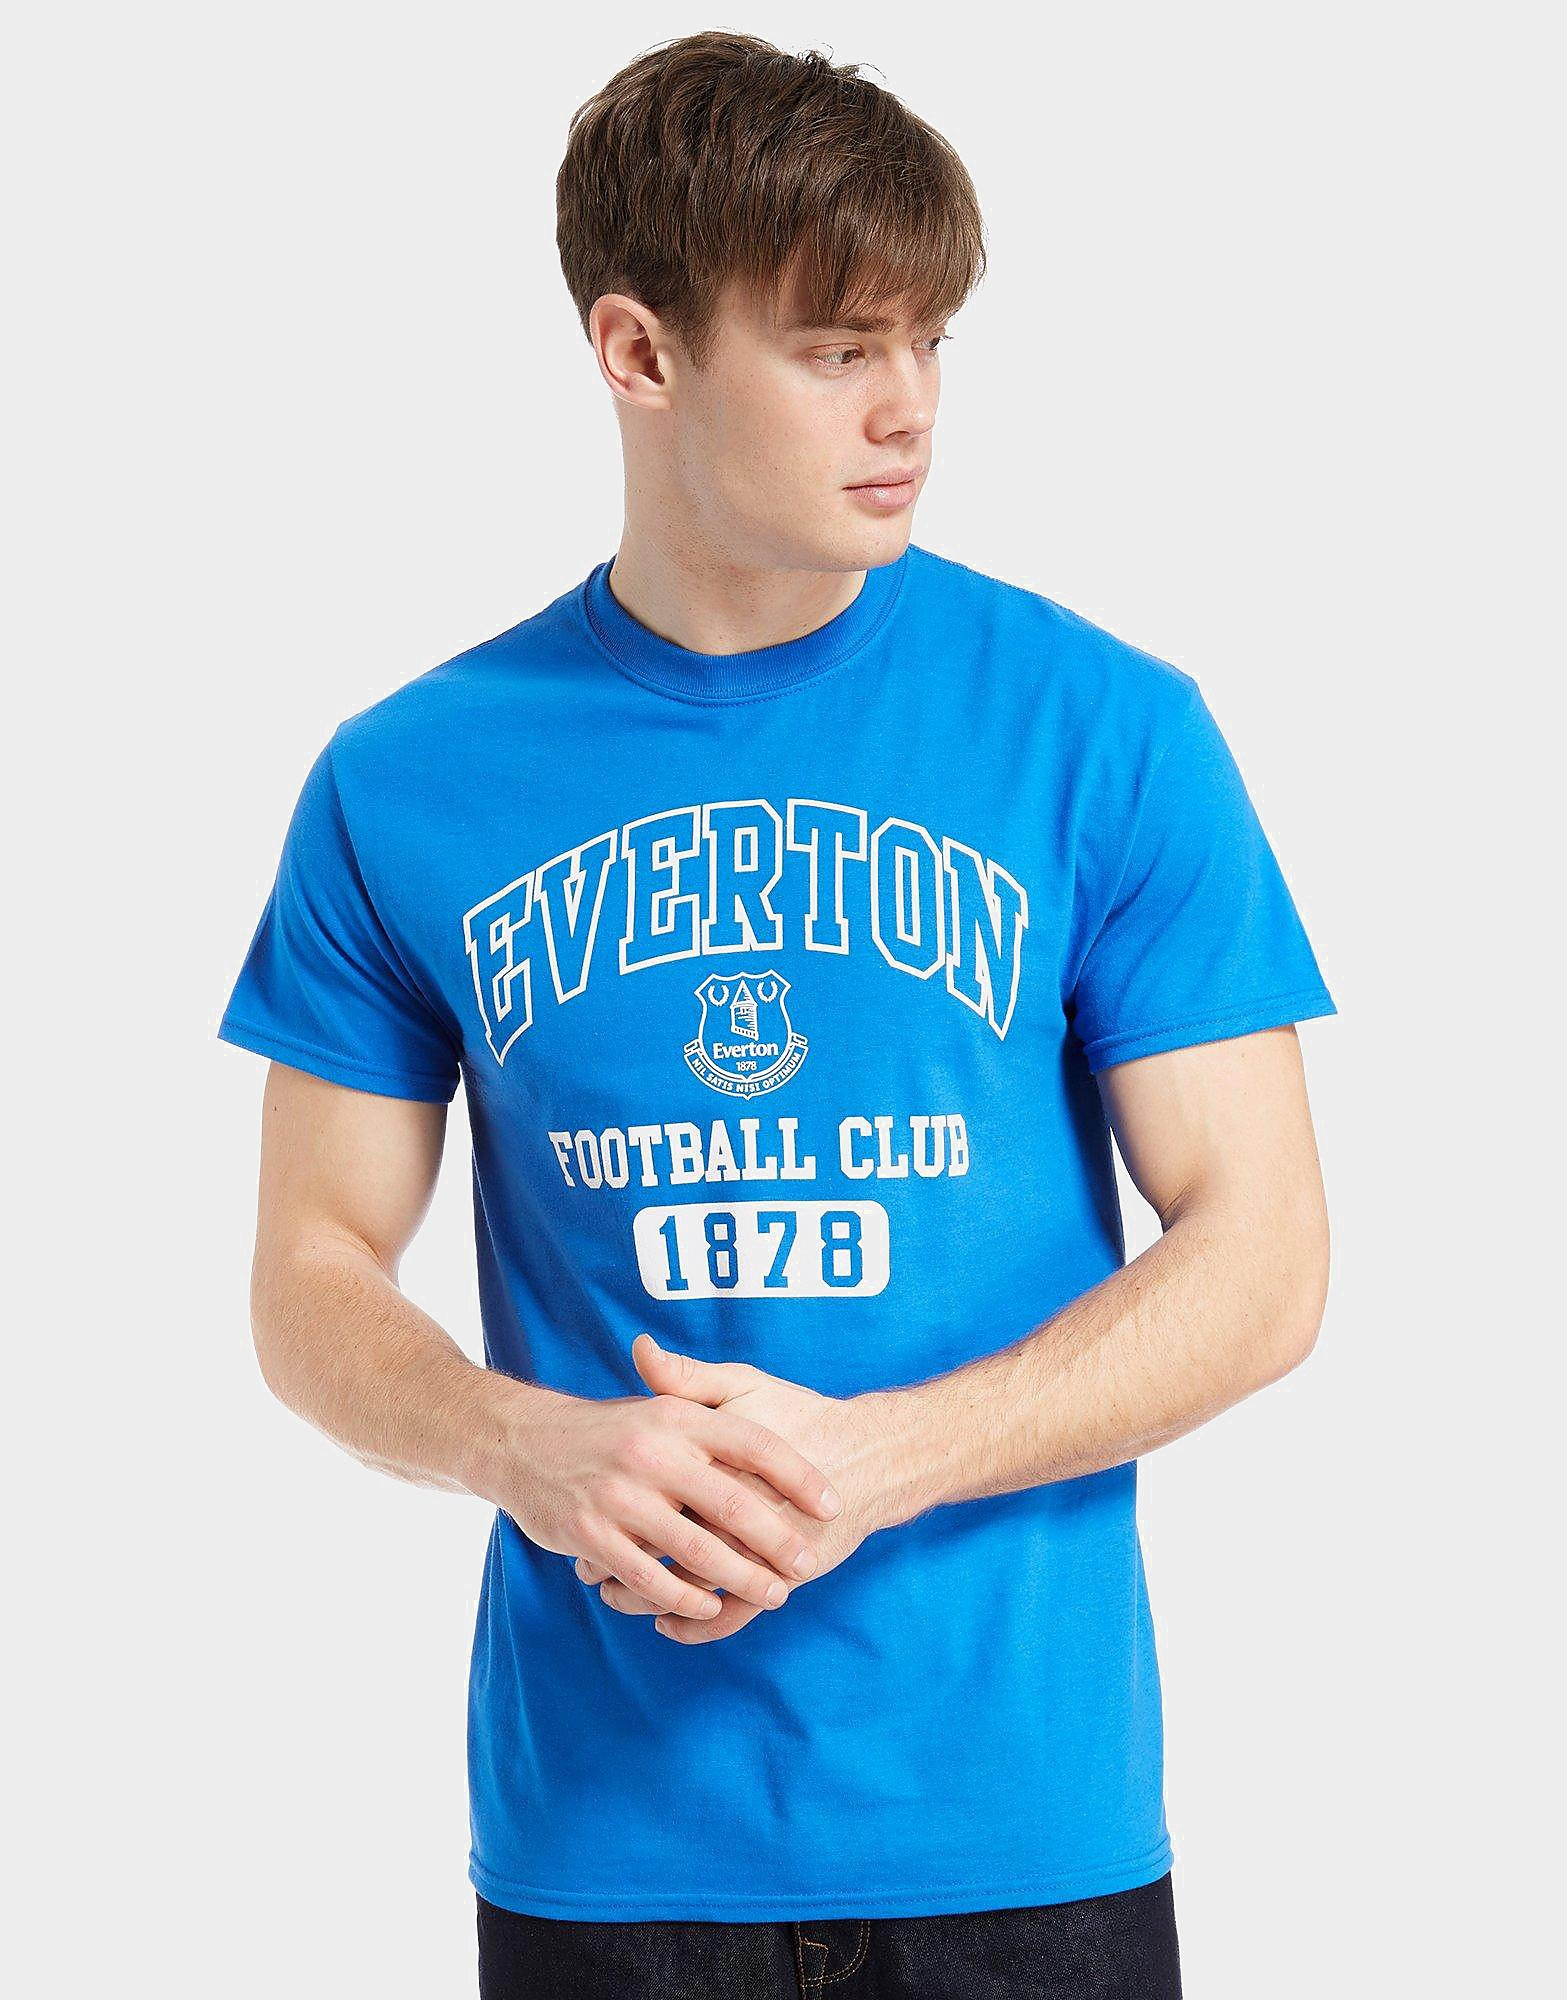 Official Team T-shirt Everton FC 1878